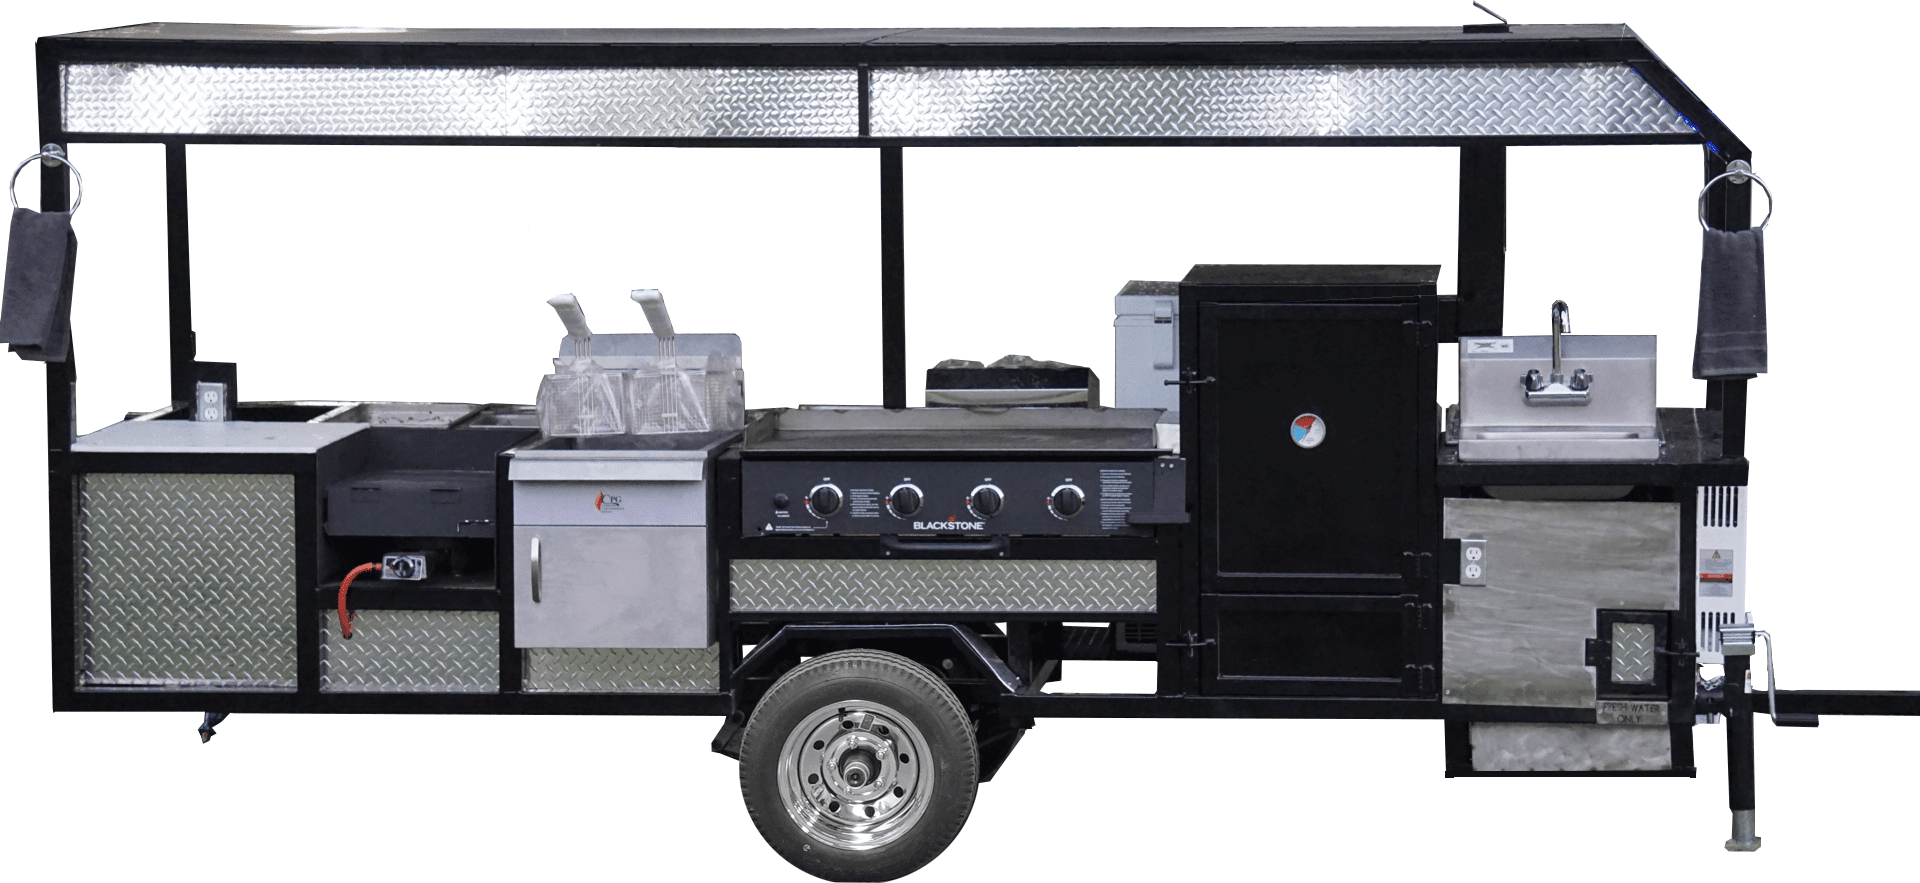 Lease to Own Concession Trailers - No Credit Check! | OMG Grills